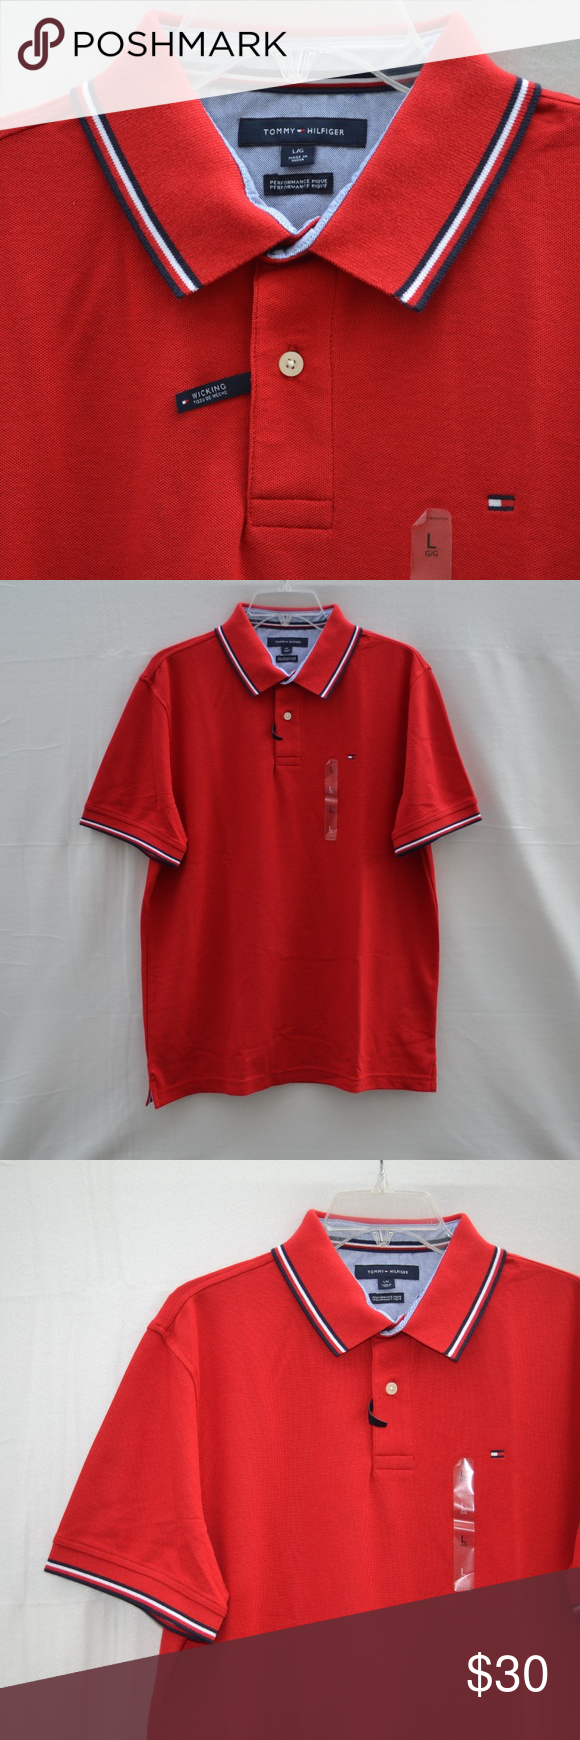 84f5eb497 TOMMY HILFIGER Wicking Performance Pique Polo Red TOMMY HILFIGER Men s  Wicking Performance Pique Polo Shirt Red